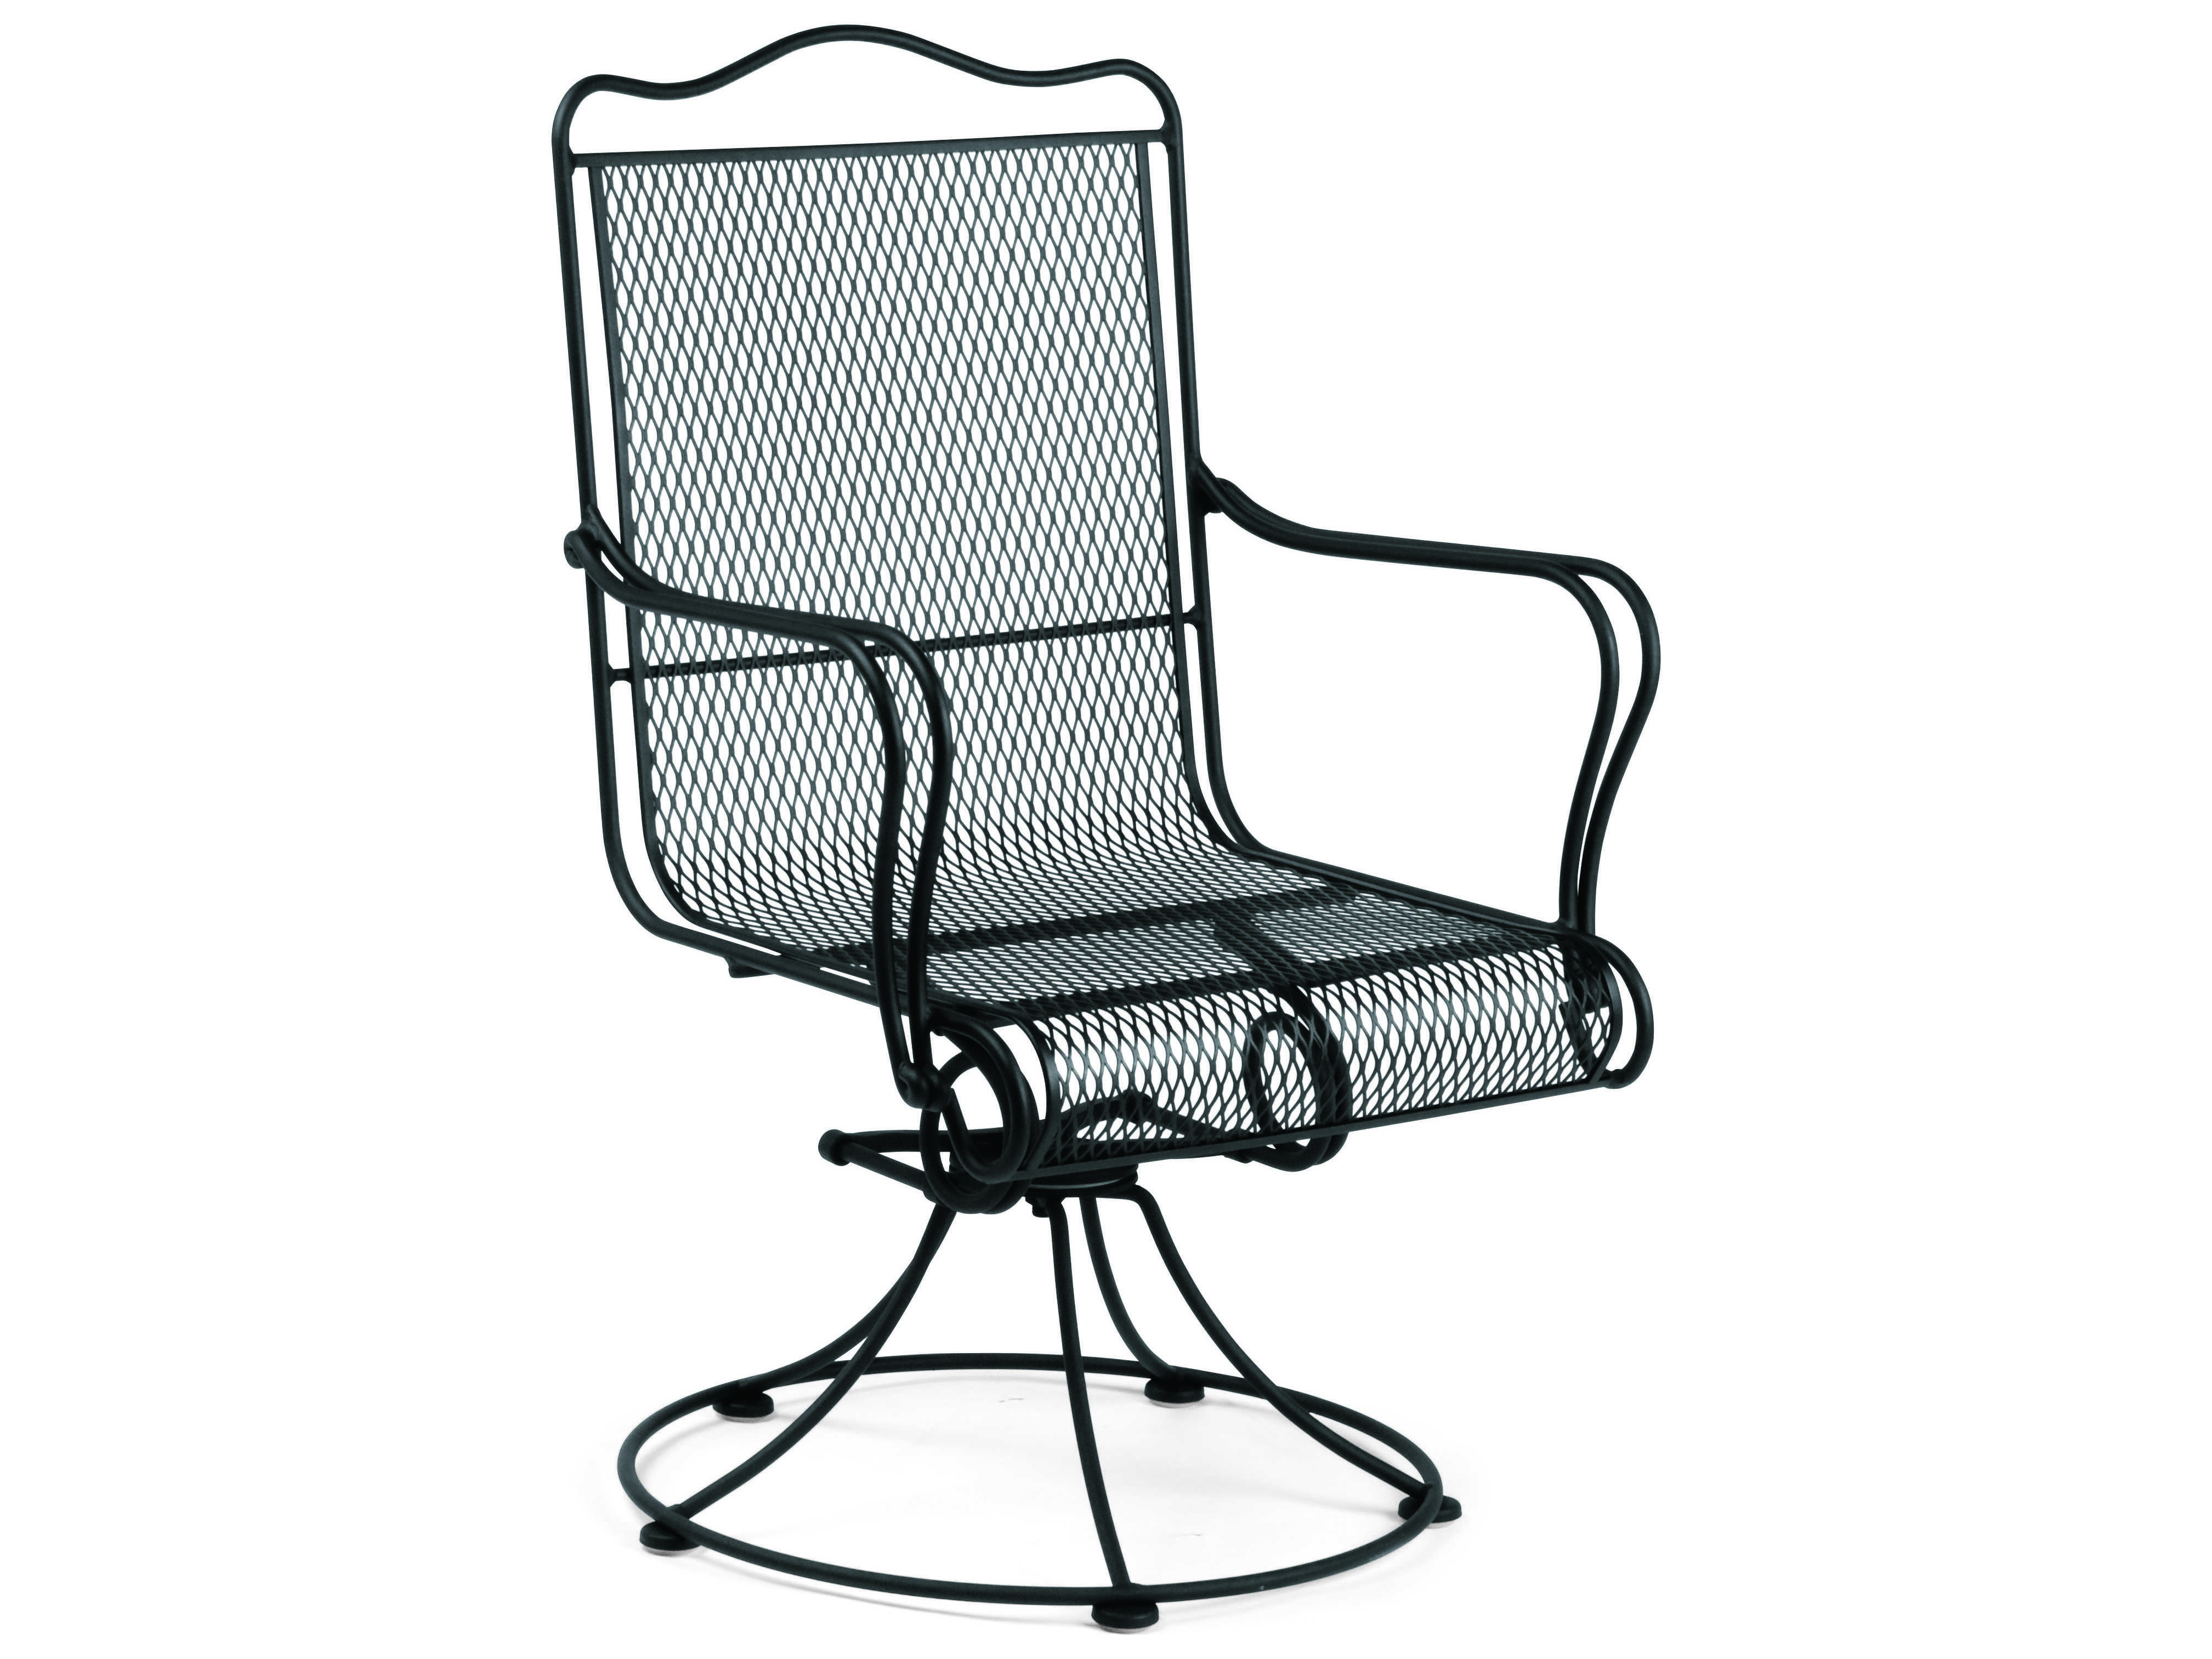 Woodard Tucson Wrought Iron High Back Swivel Rocker Dining Chair